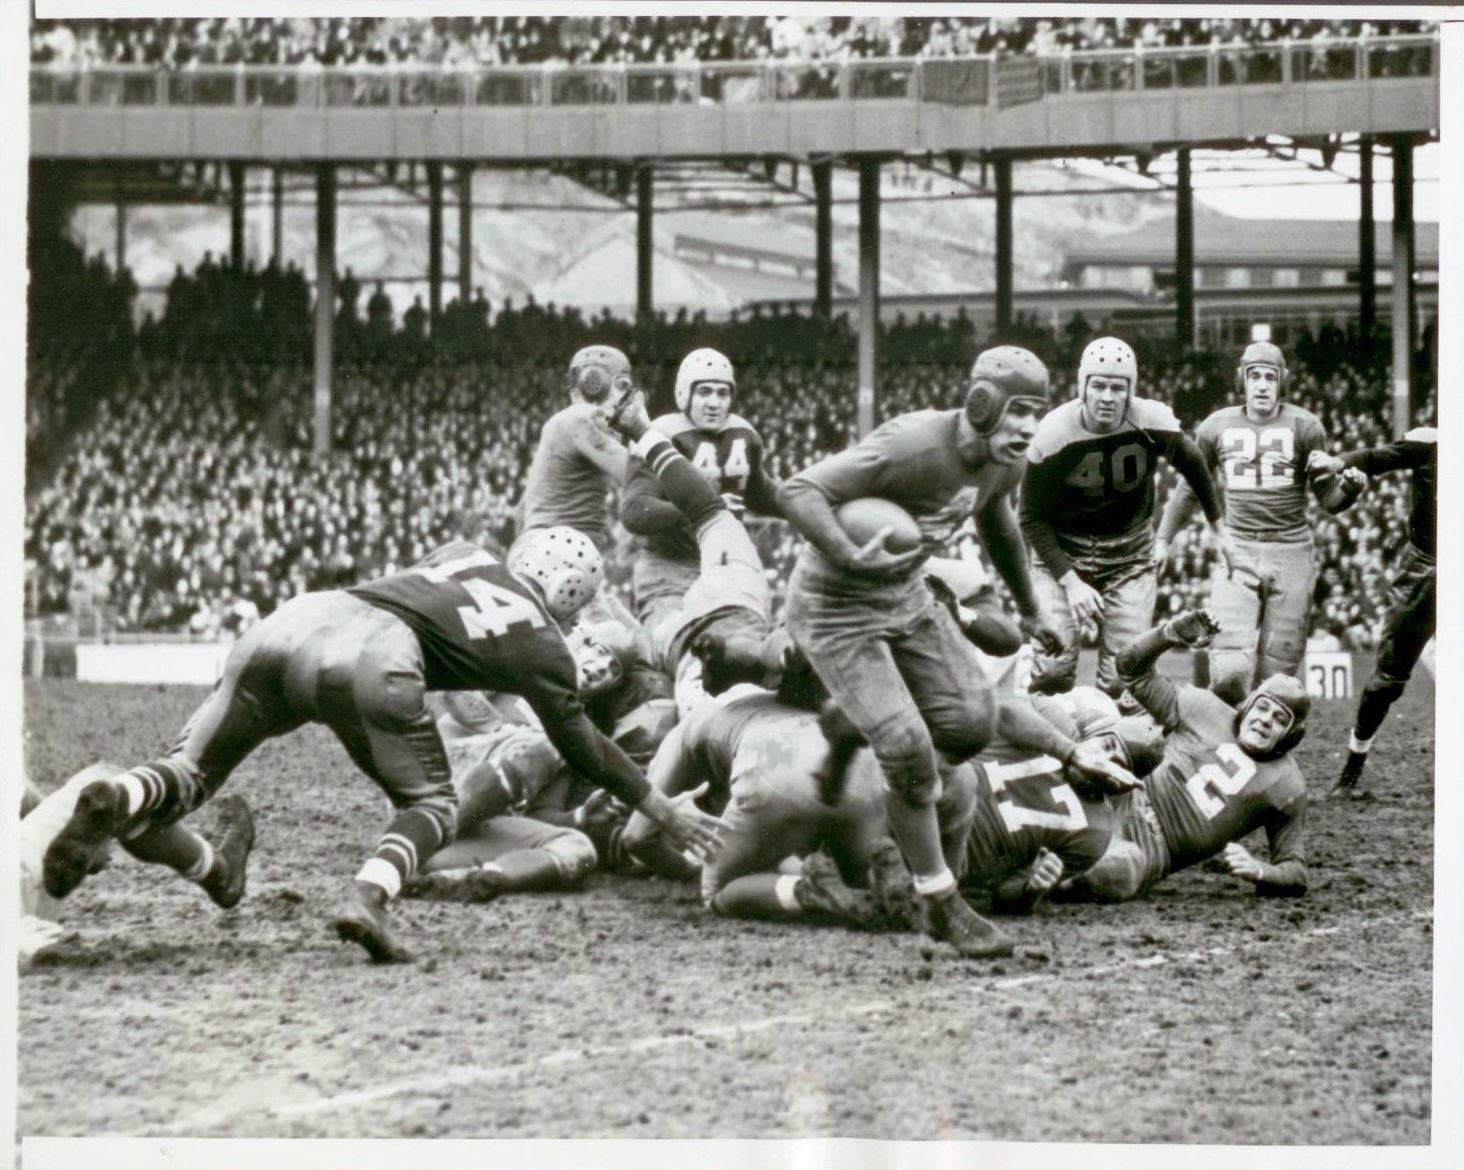 Tuffy Leemans, New York Giants (November 21, 1937)